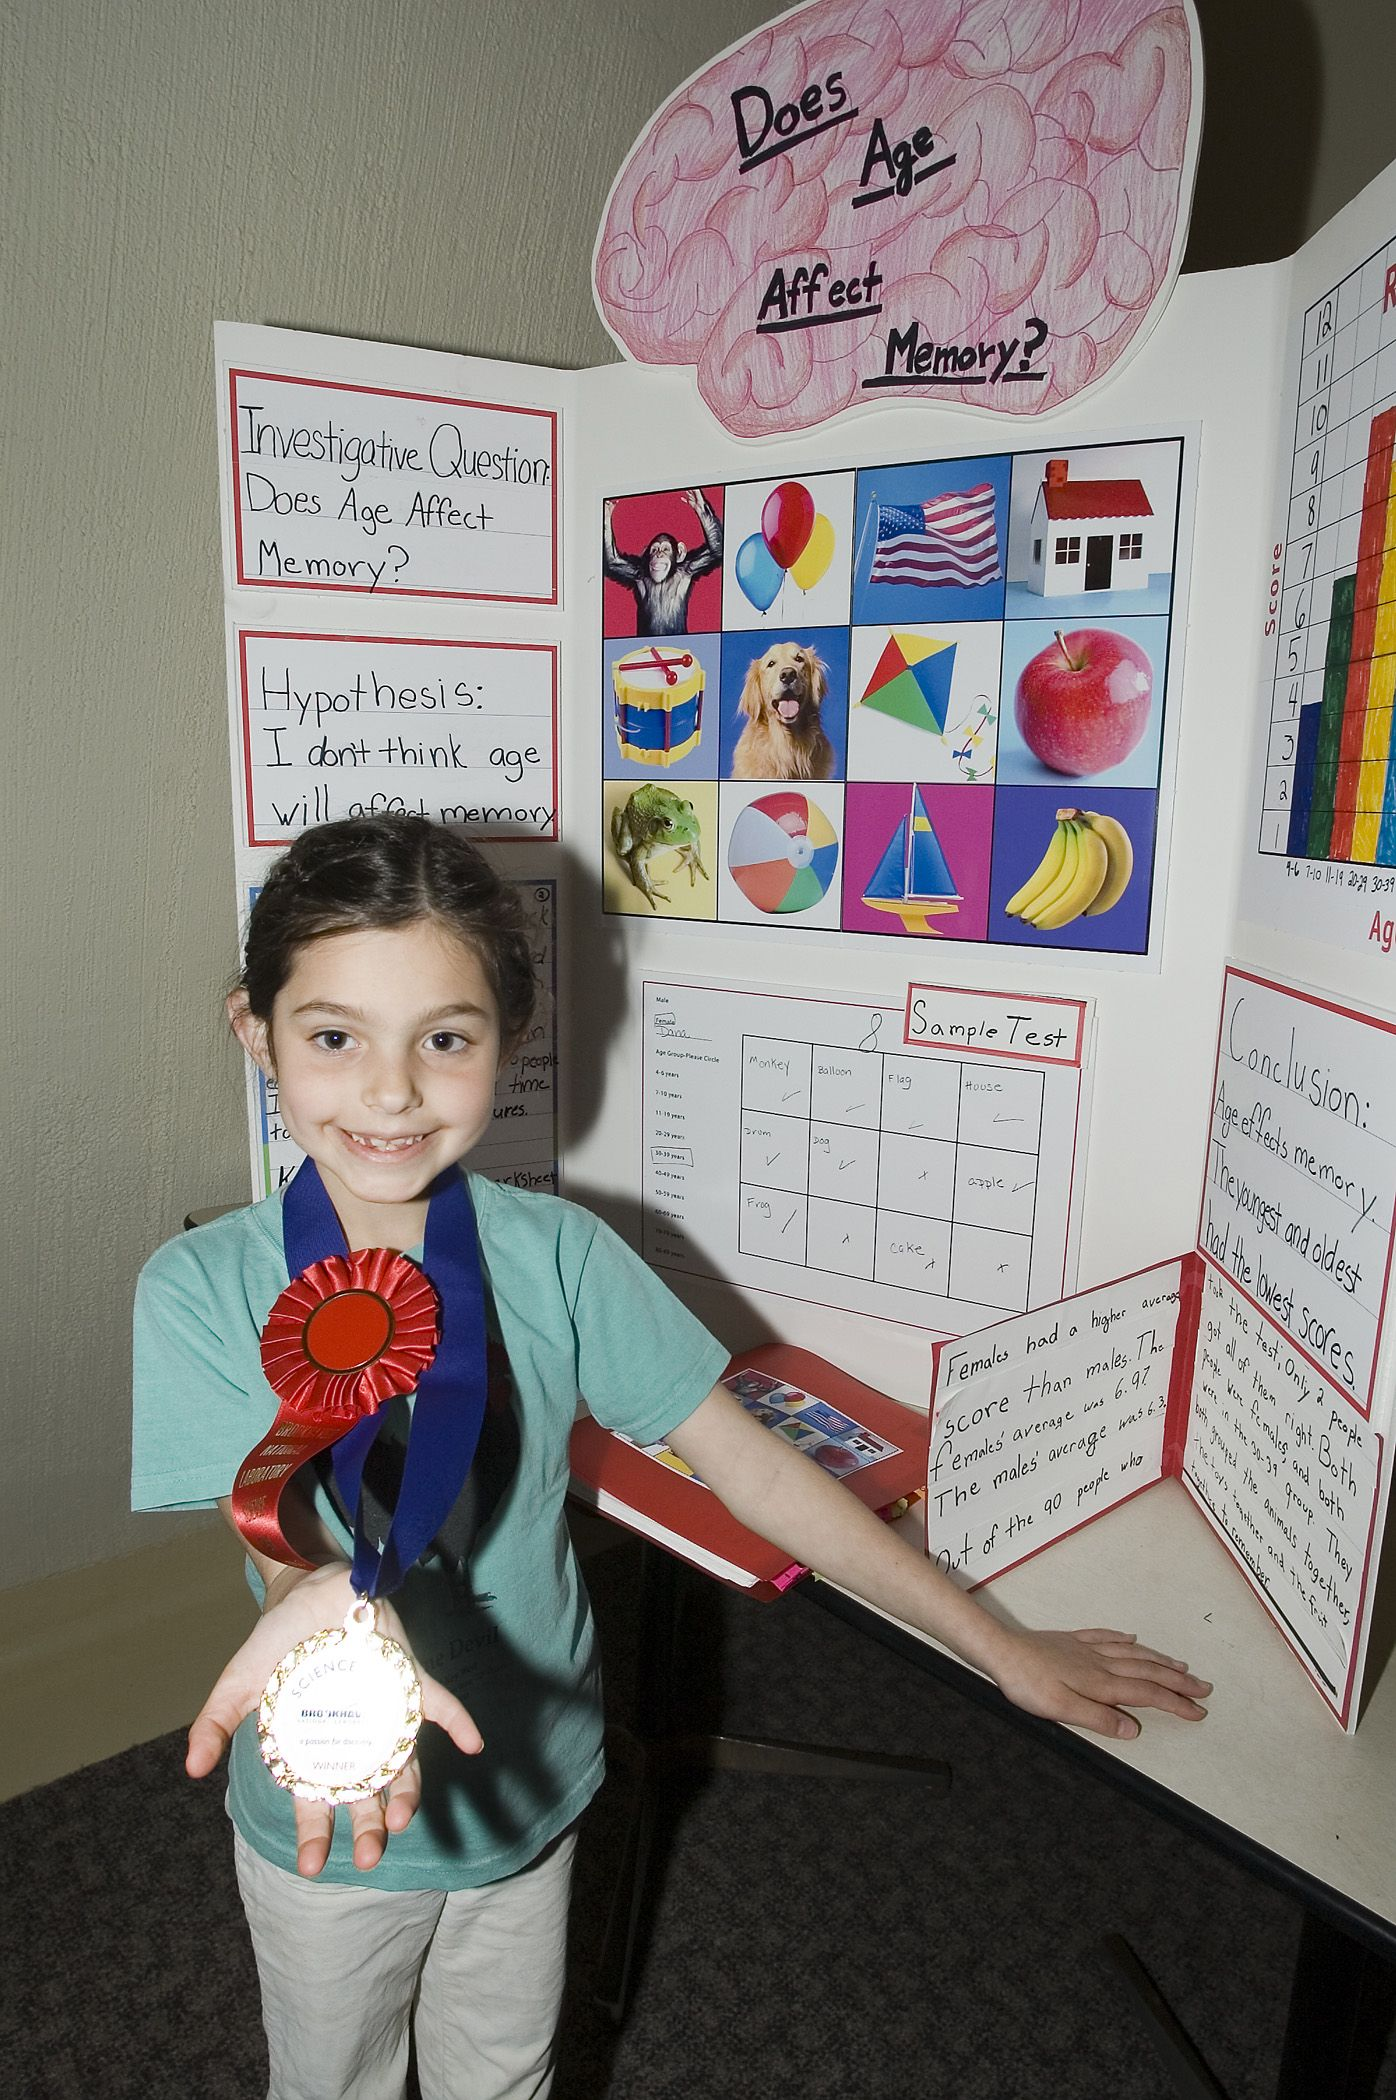 Science Fair Project Does Age Affect Memory